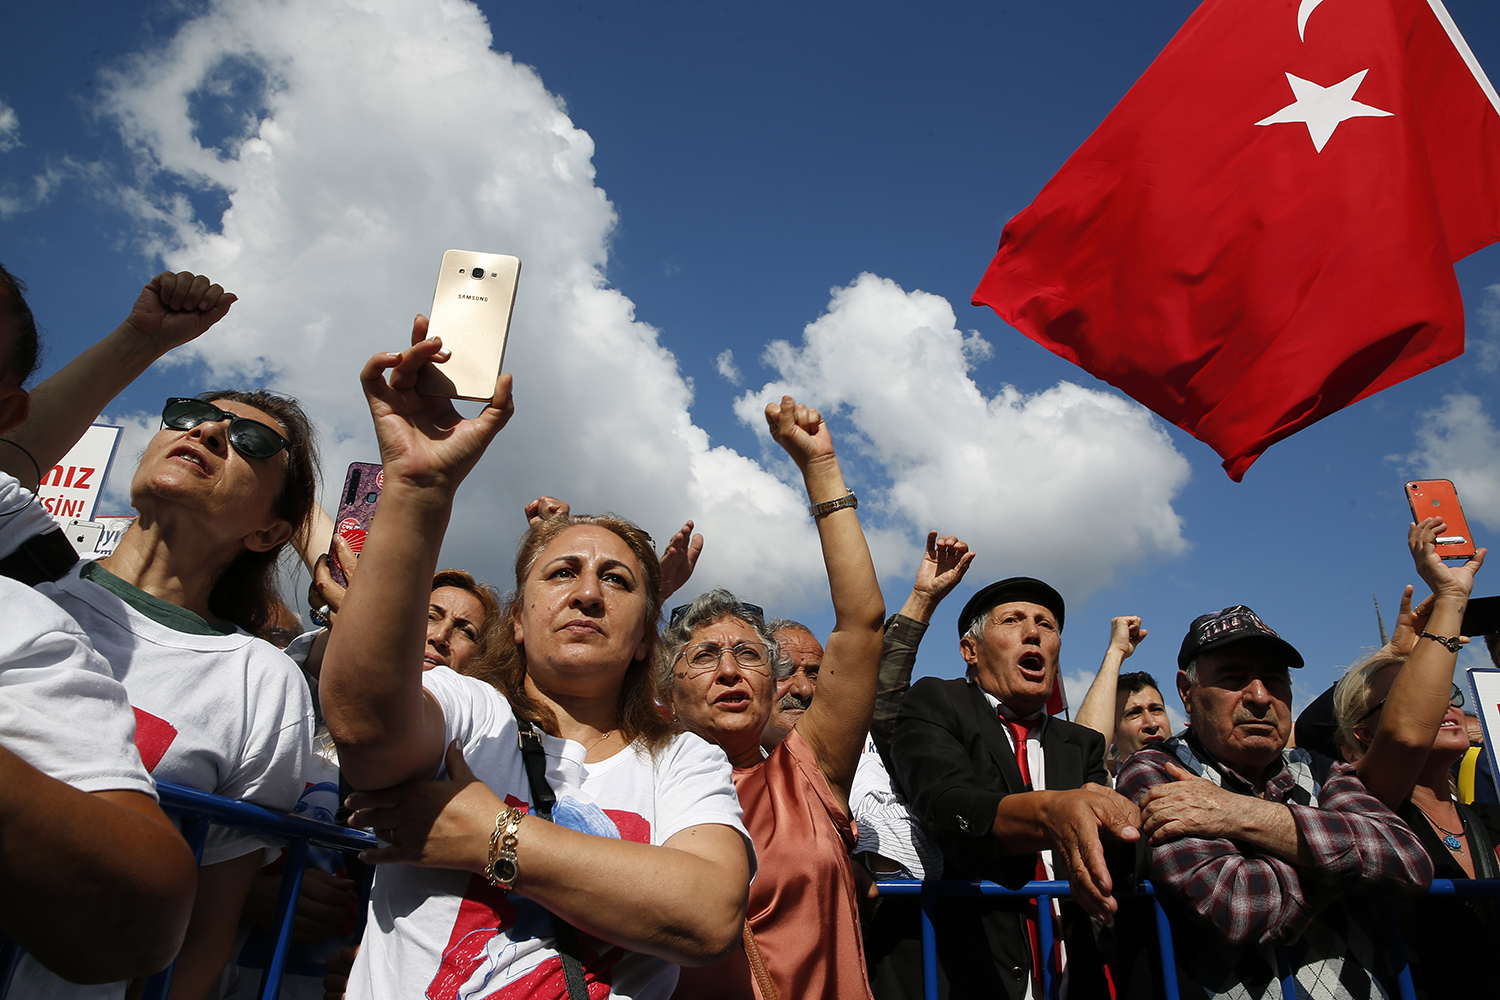 Supporters of Kaftancioglu chant slogans during a rally outside a court in Istanbul where she was standing trial on July 18, 2019.